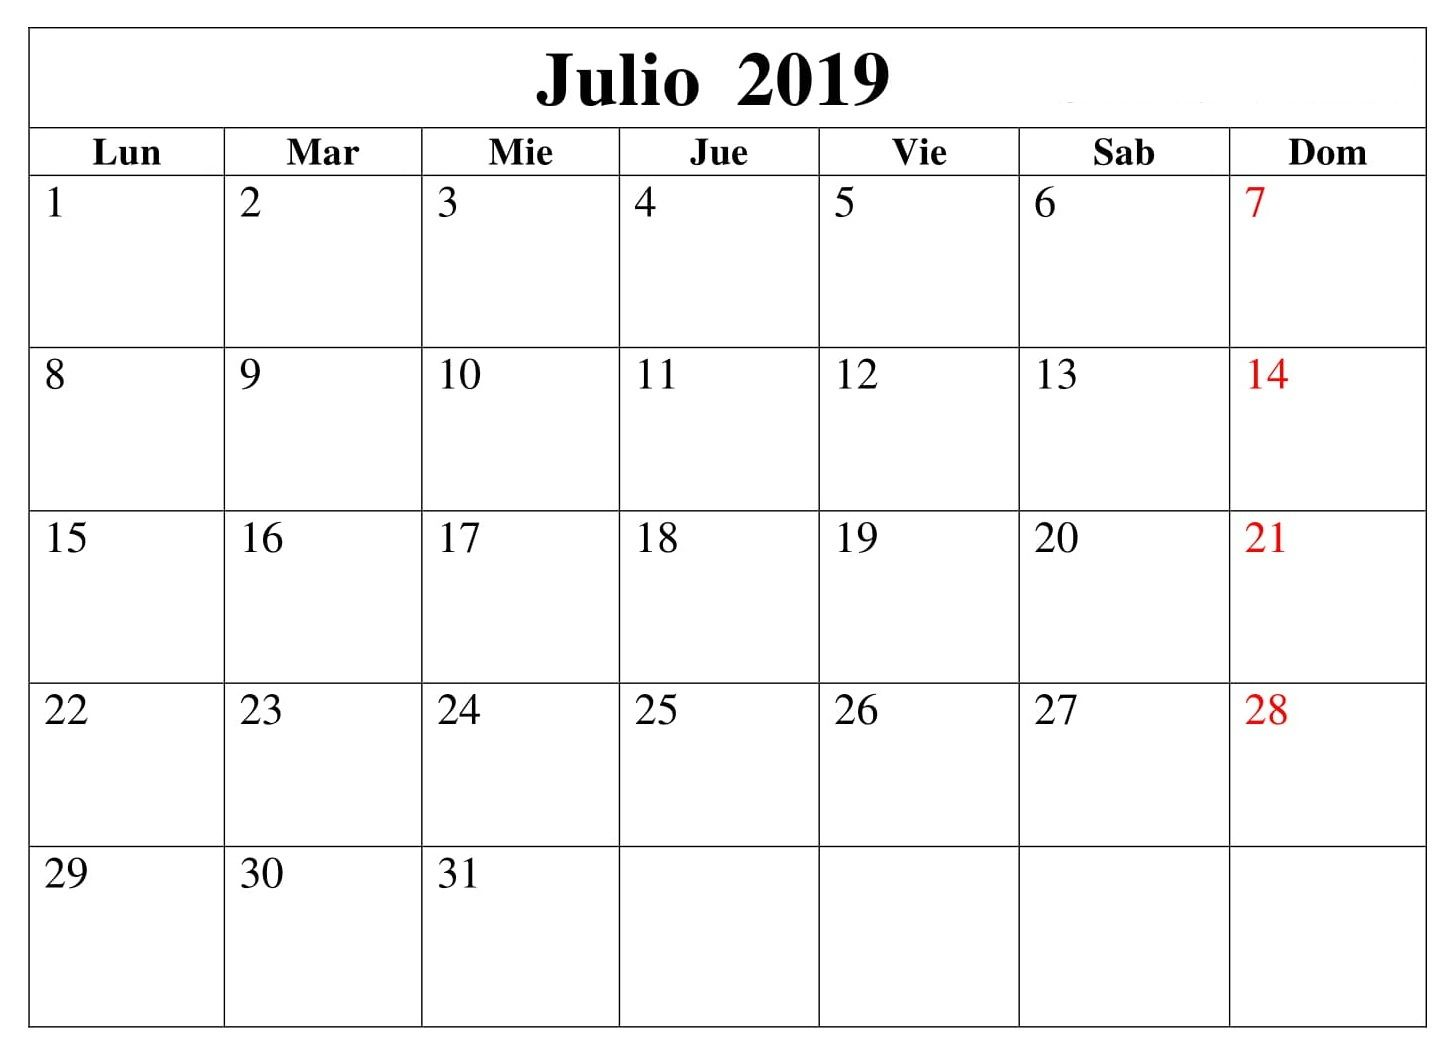 Calendario Mensual Word.Calendario 2019 Julio Para Imprimir Word Mensual